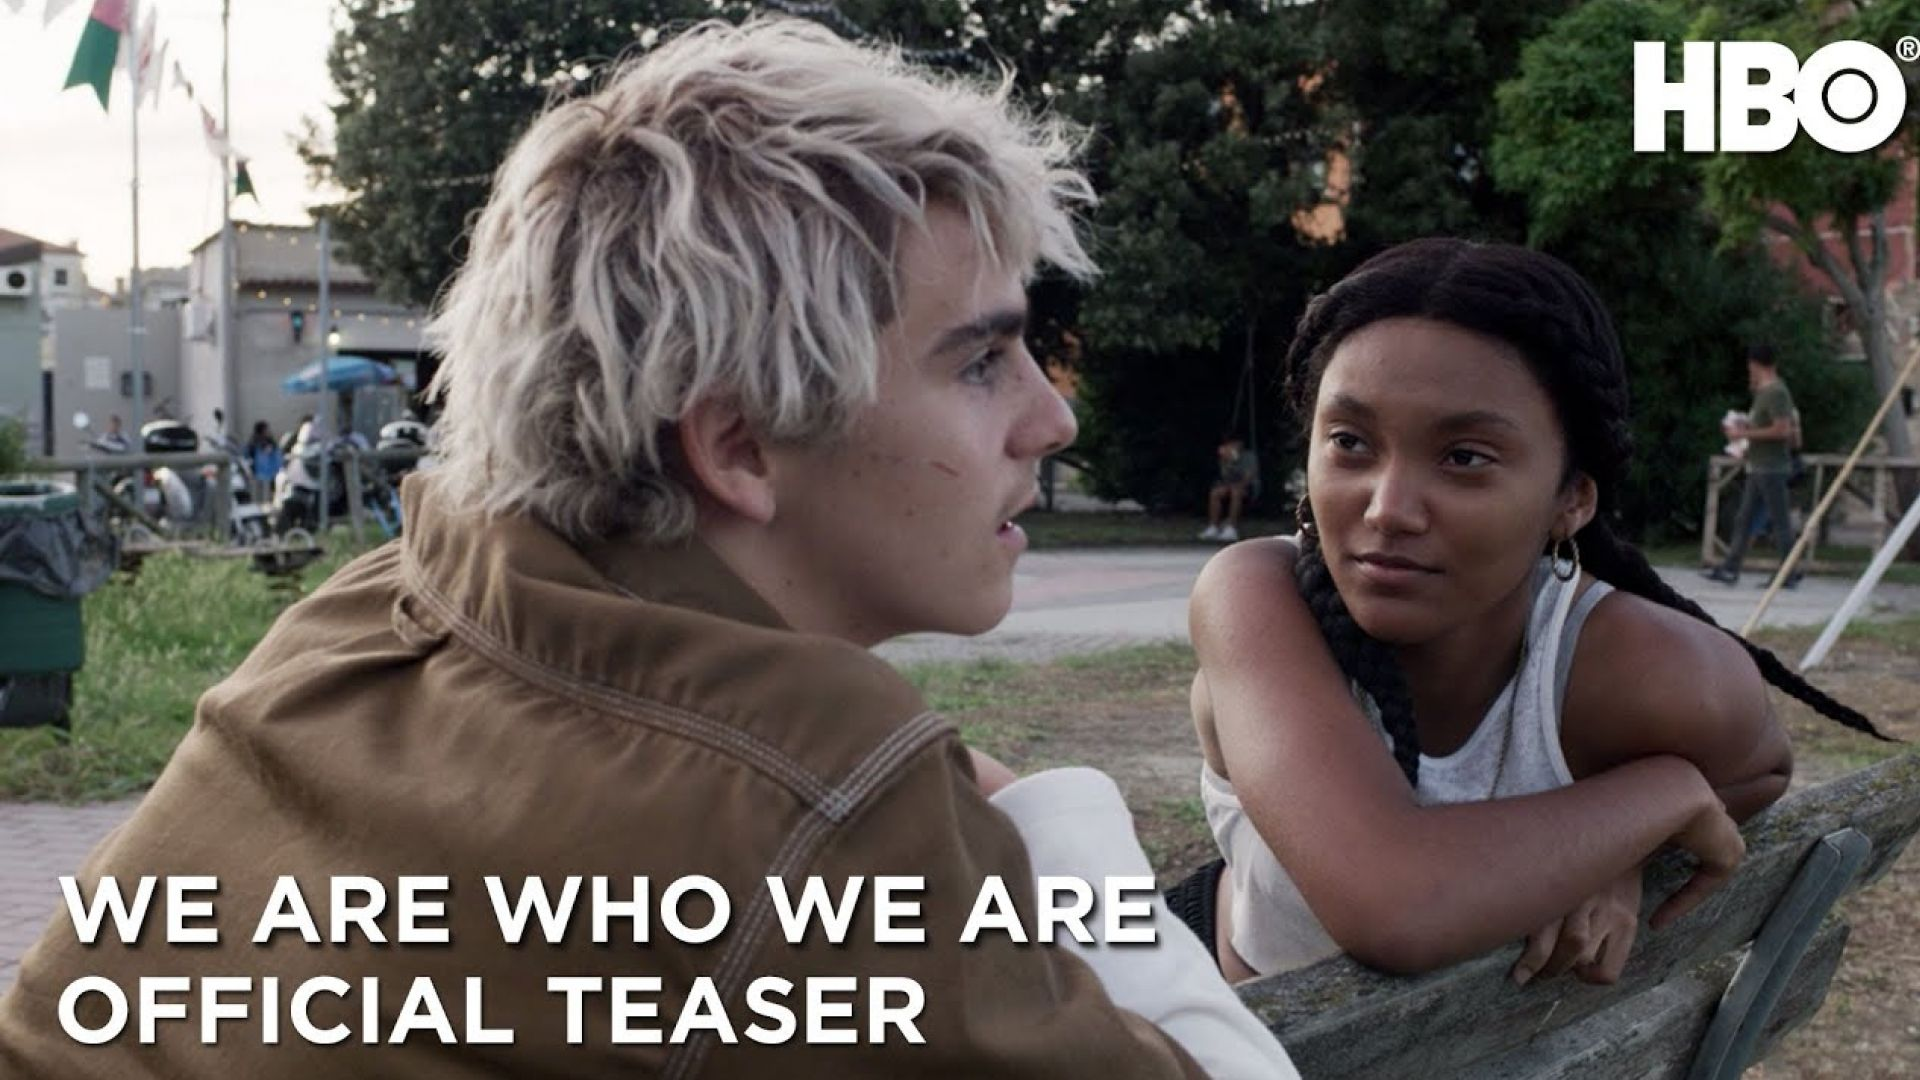 'We Are Who We Are' Trailer (HBO)